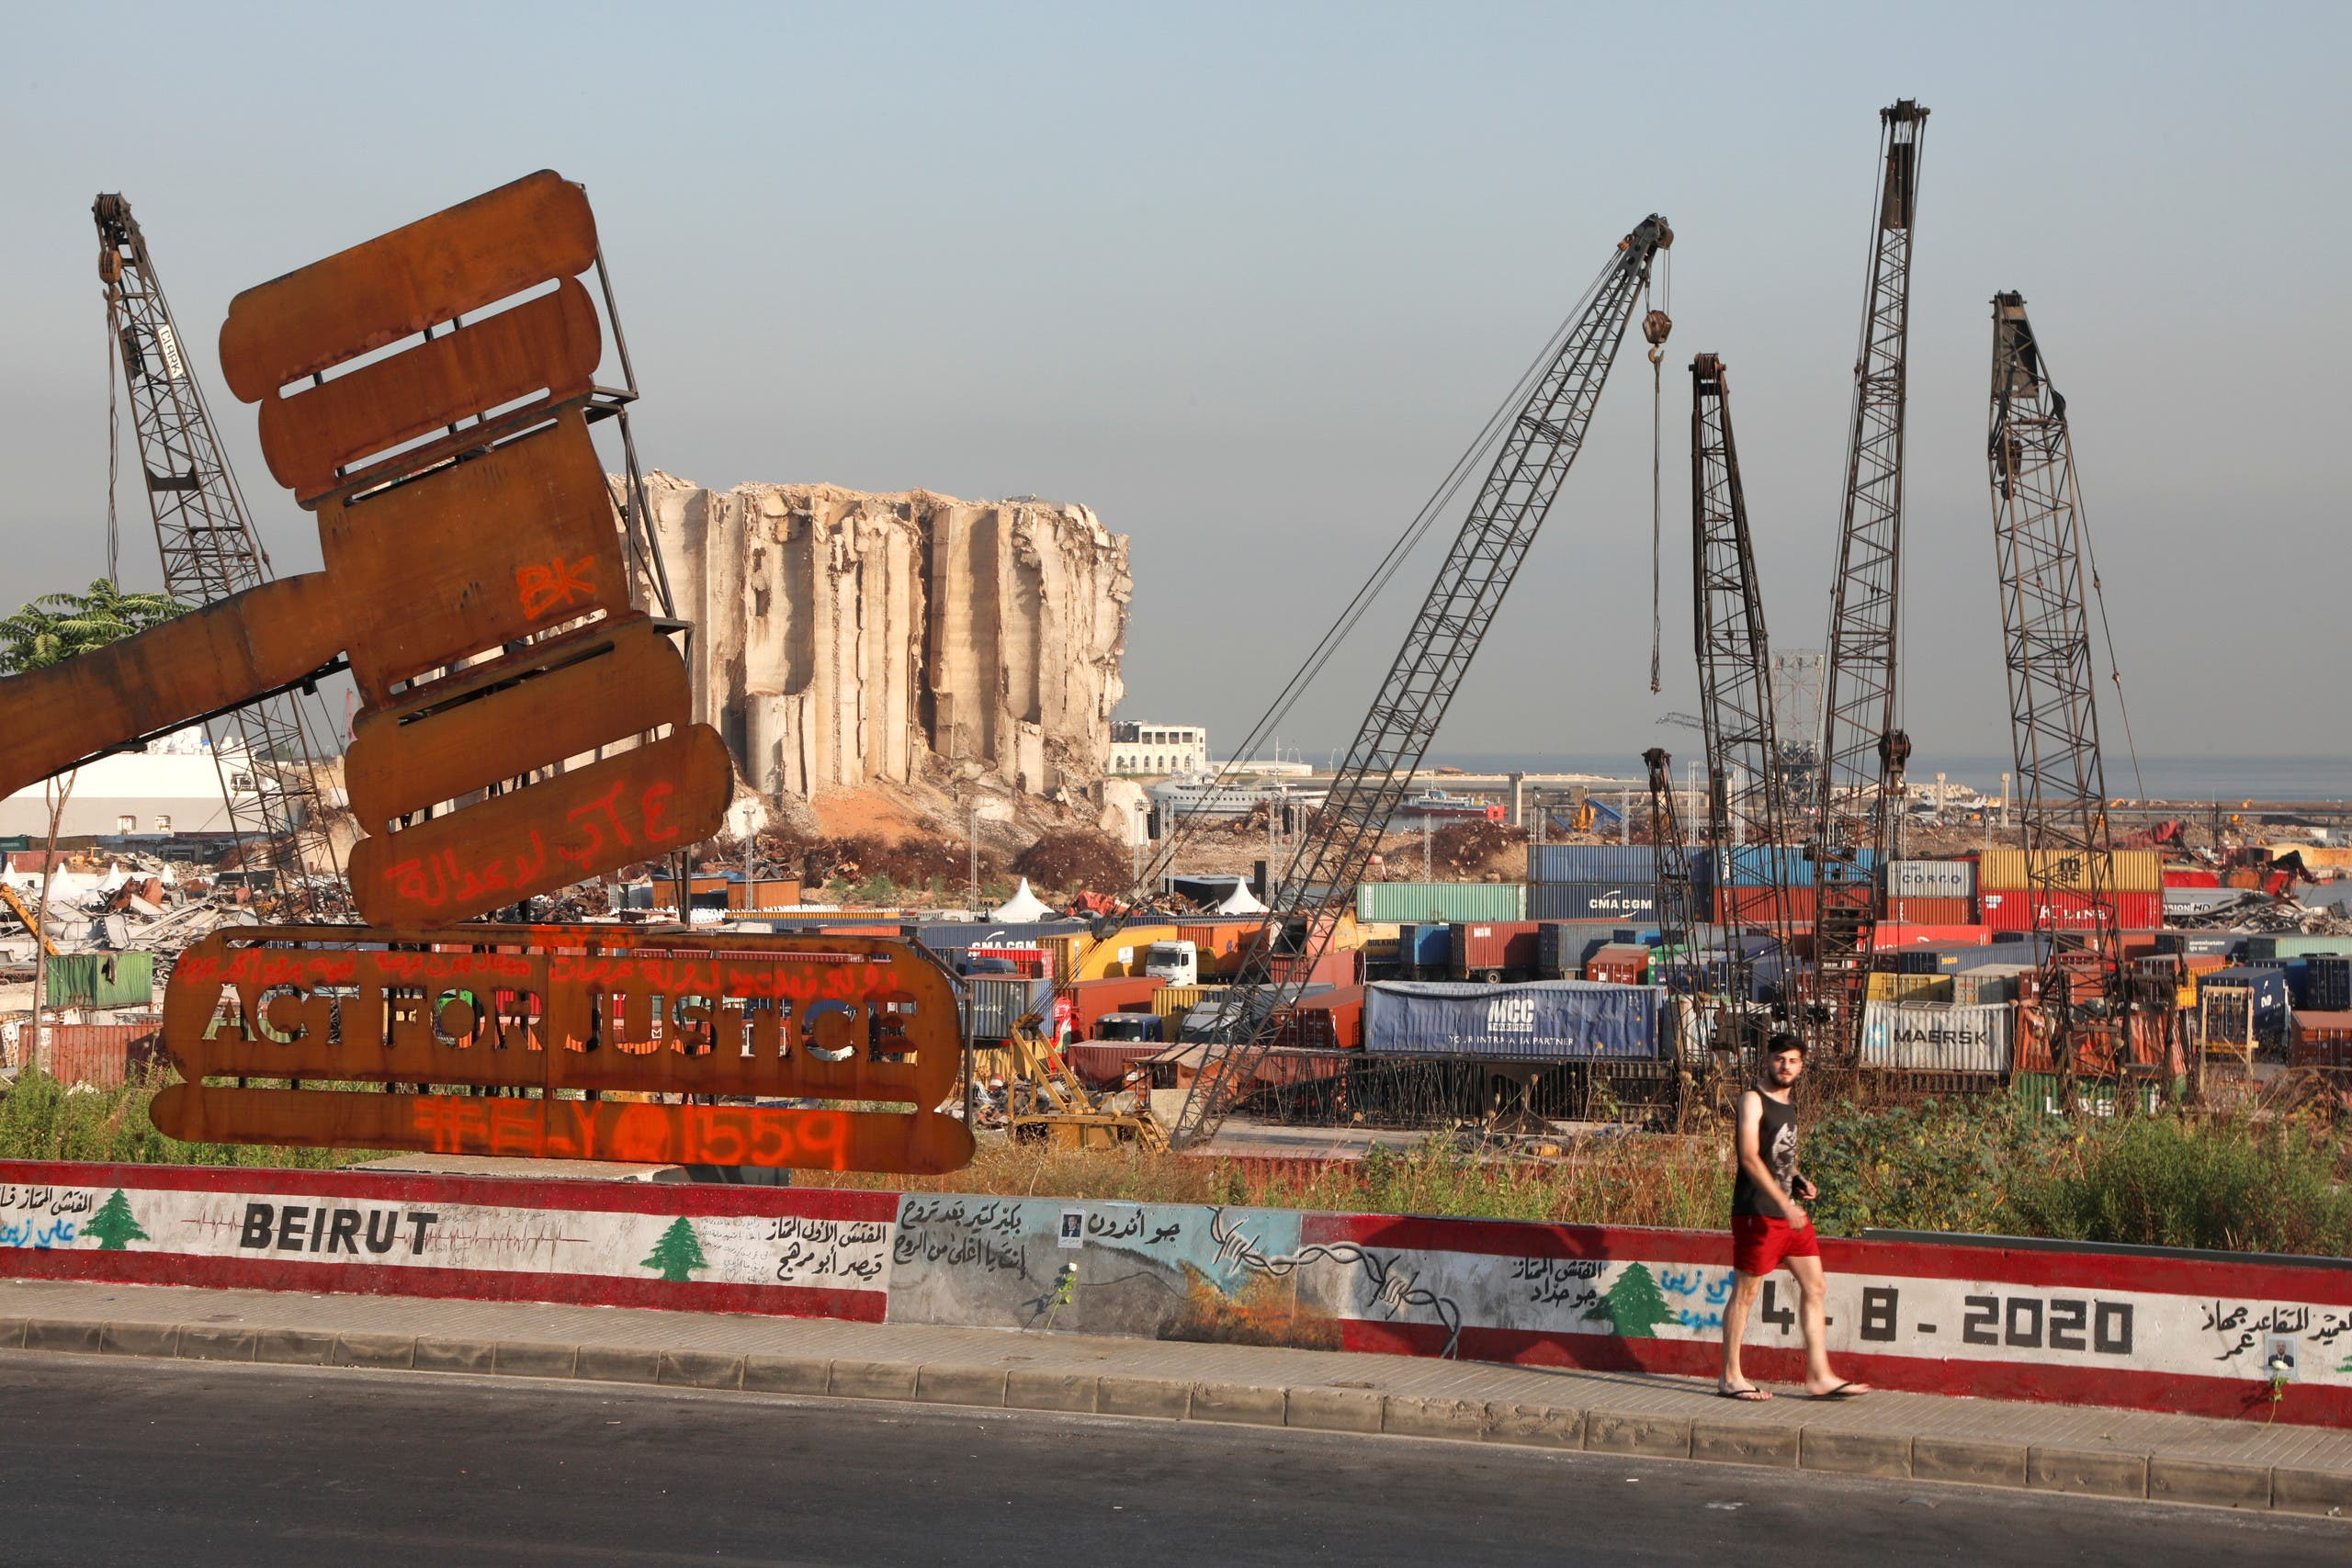 A justice symbol monument is seen near the grain silo damaged during last year's Beirut port blast, Aug. 4, 2021. (Reuters)